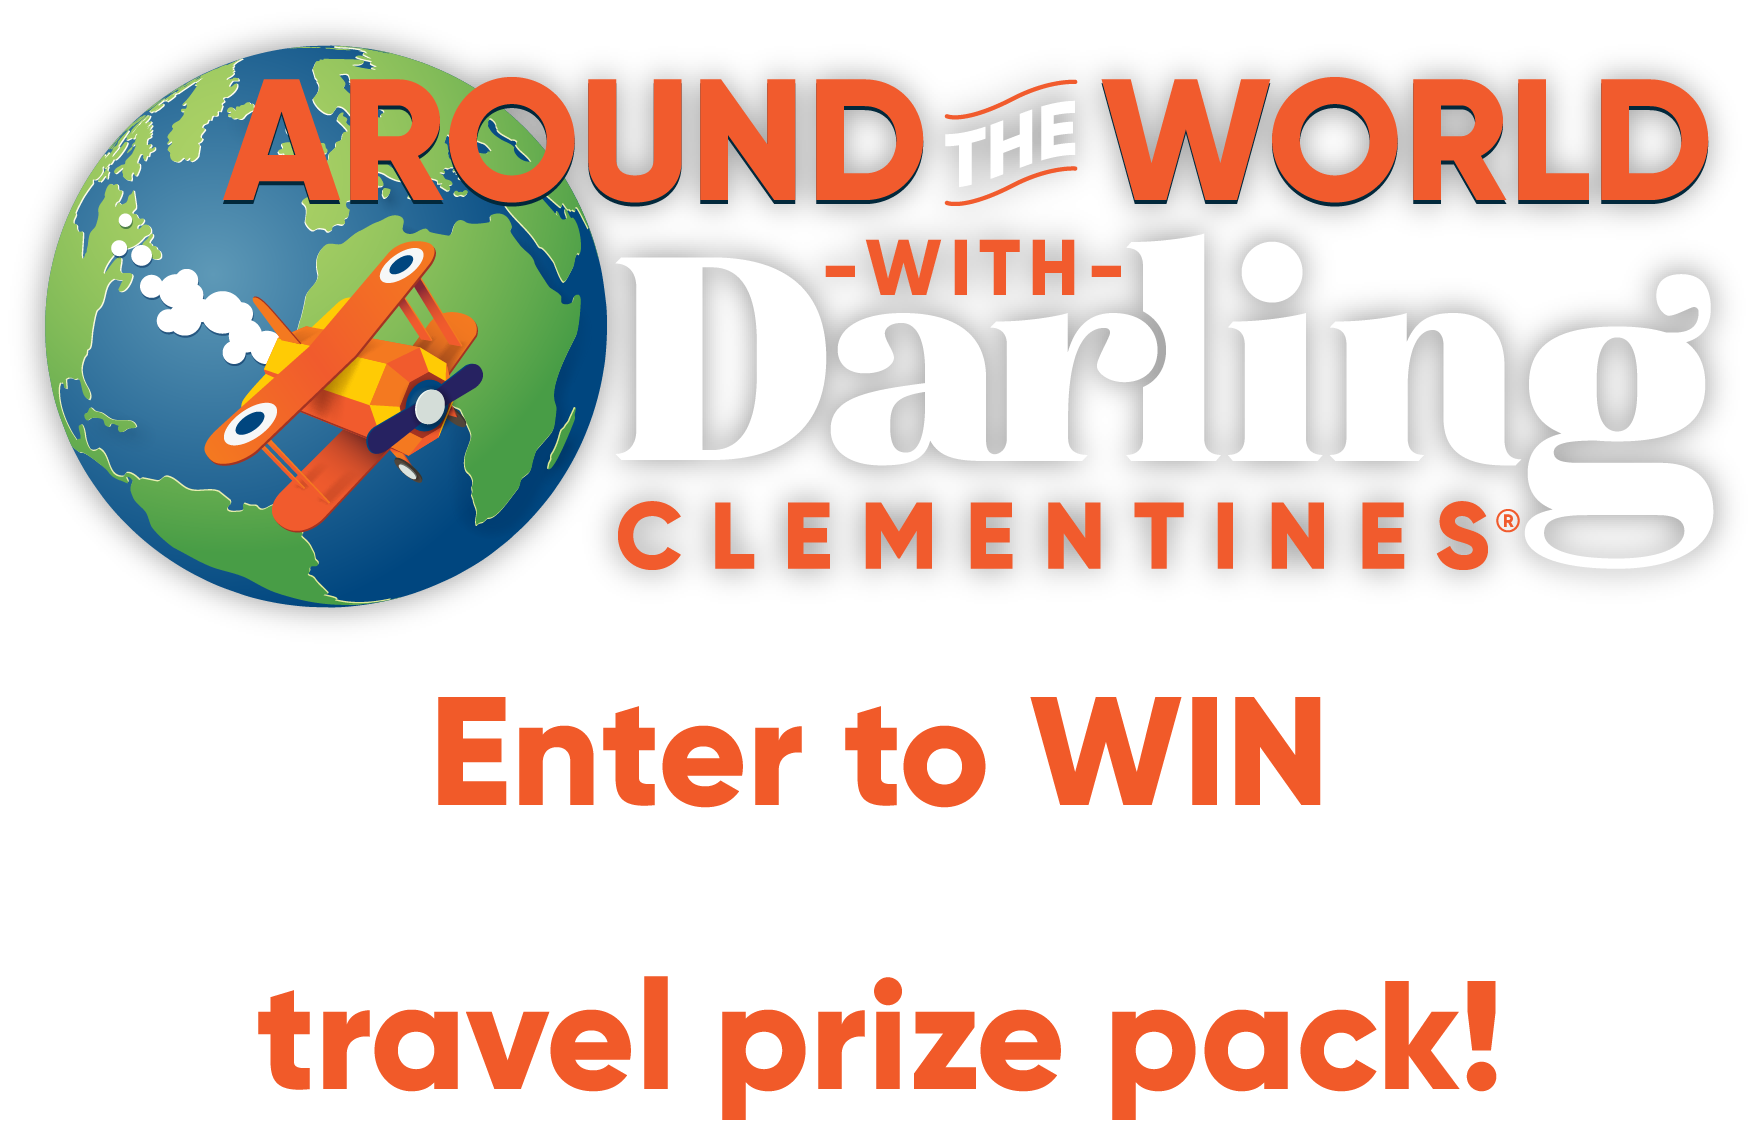 Around the World with Darling Clementines